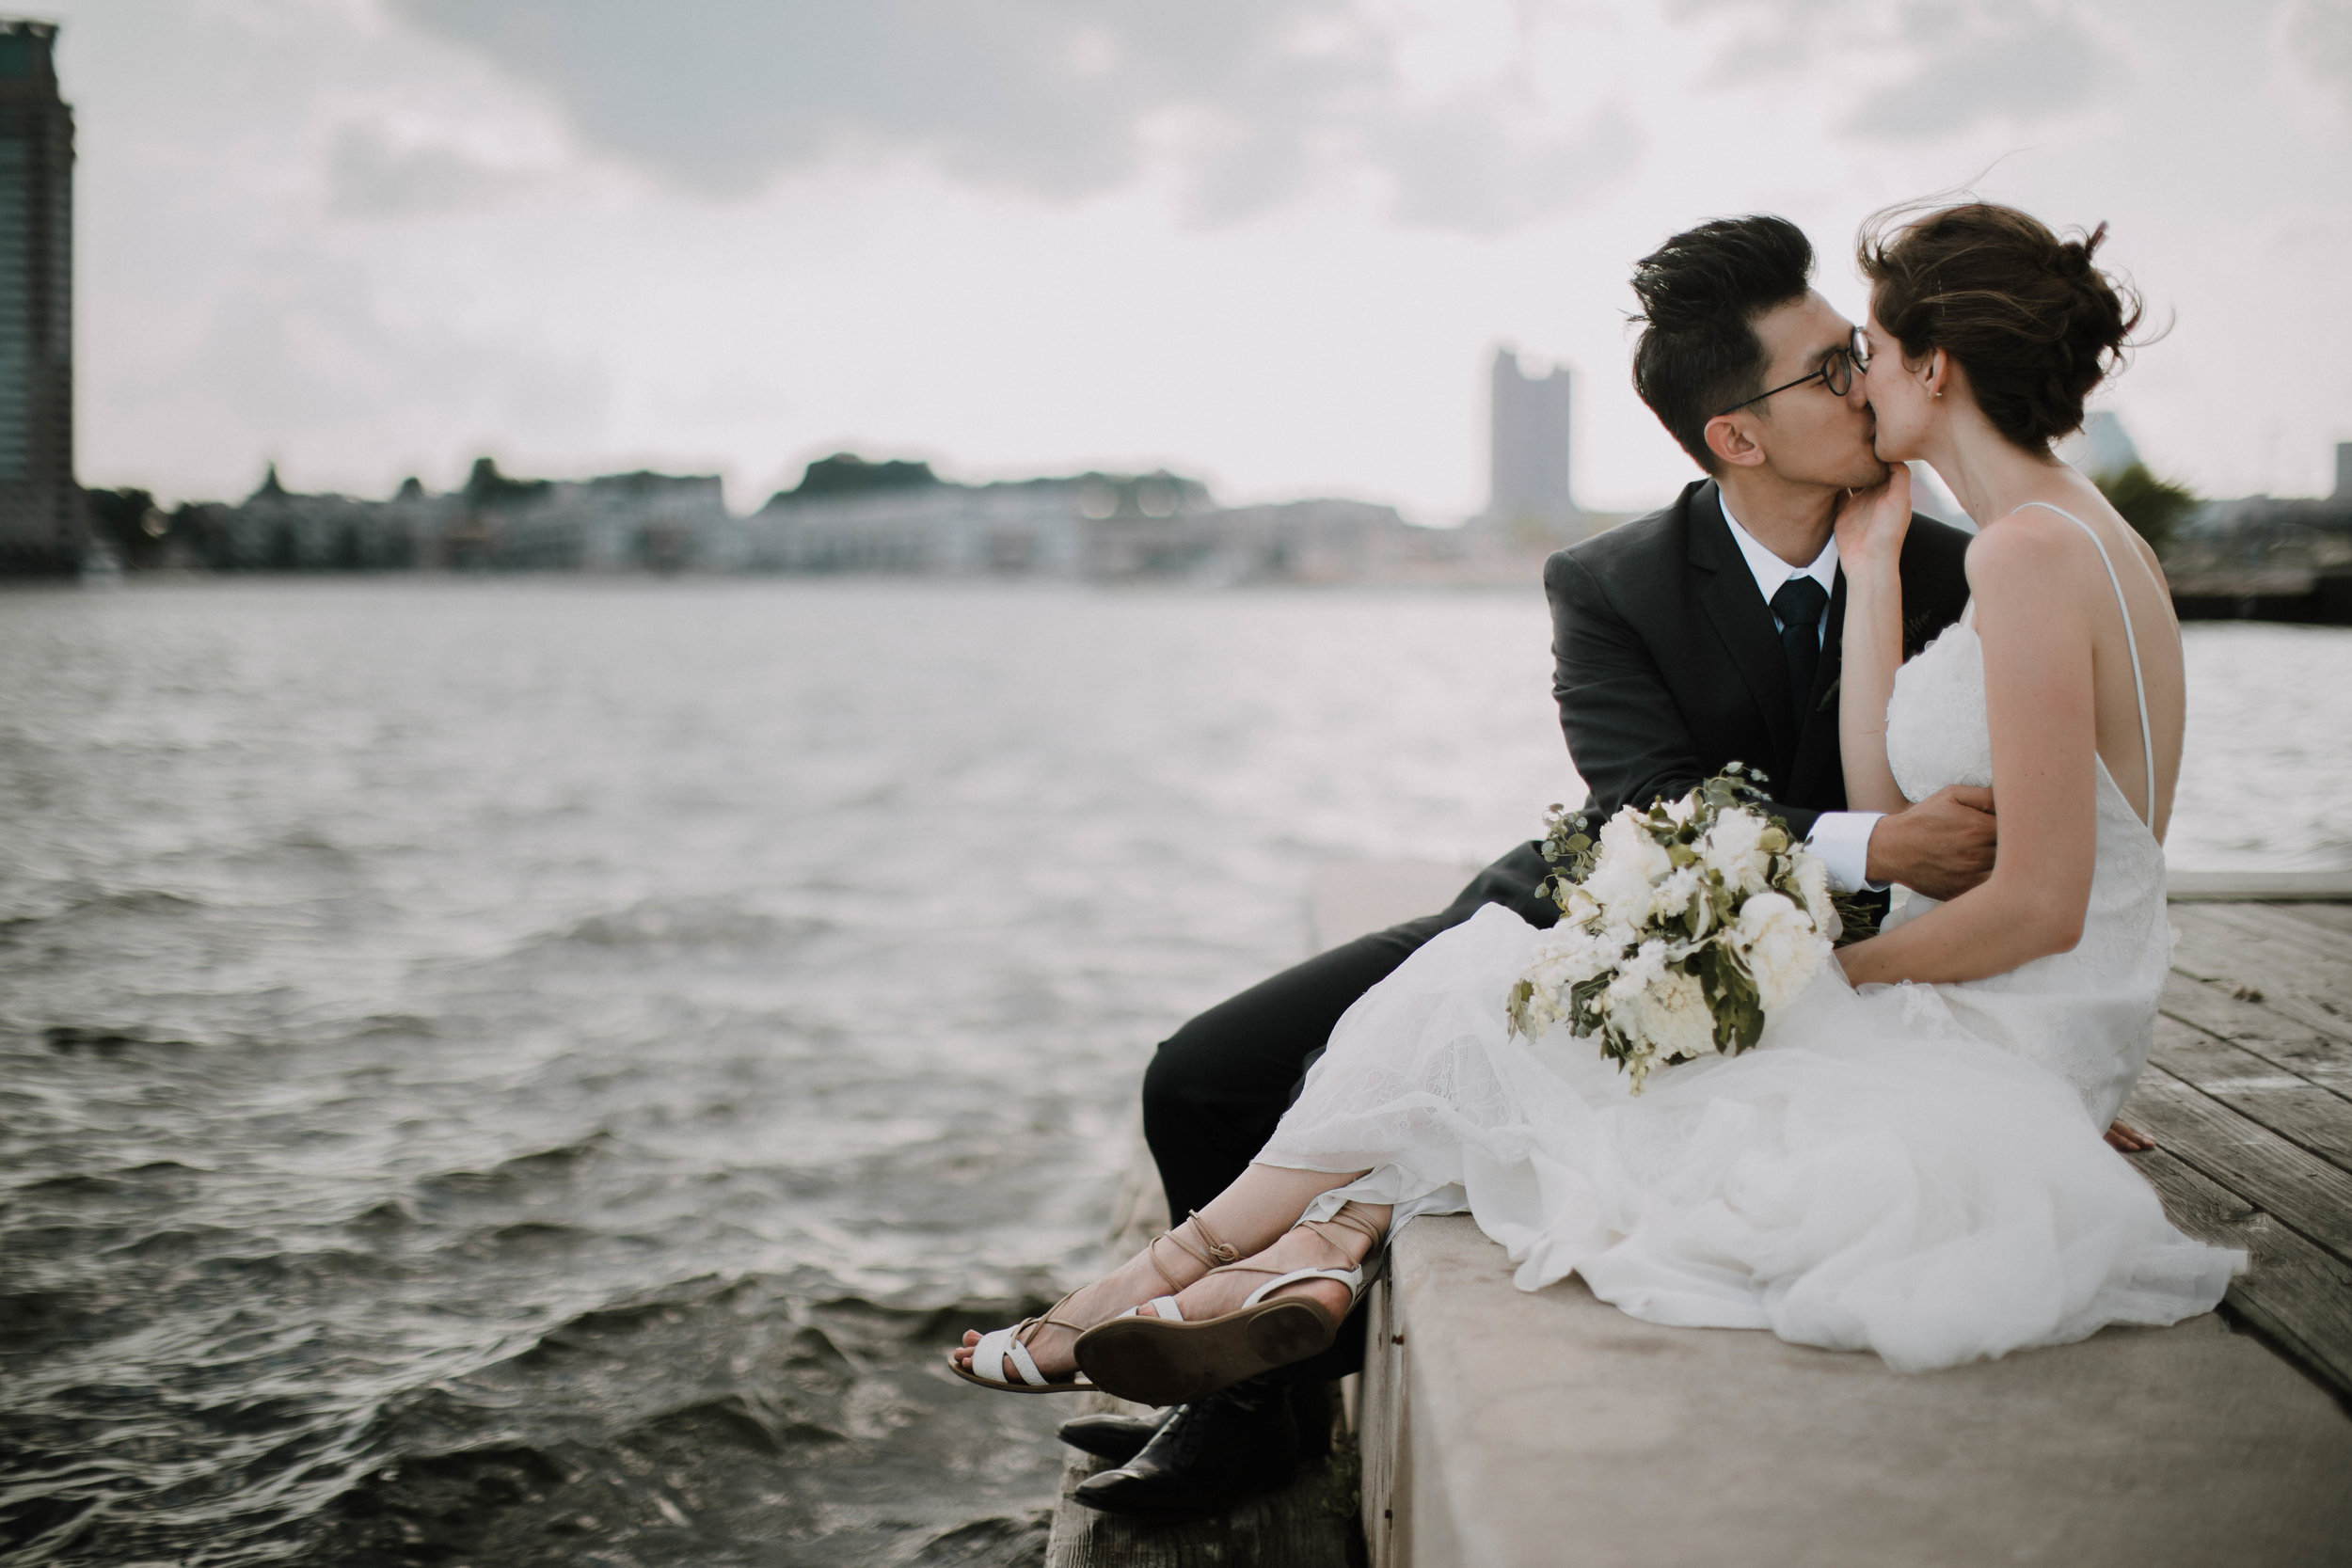 IVAN & JEN - WEDDING ON THE WATERS OF BALTIMORE